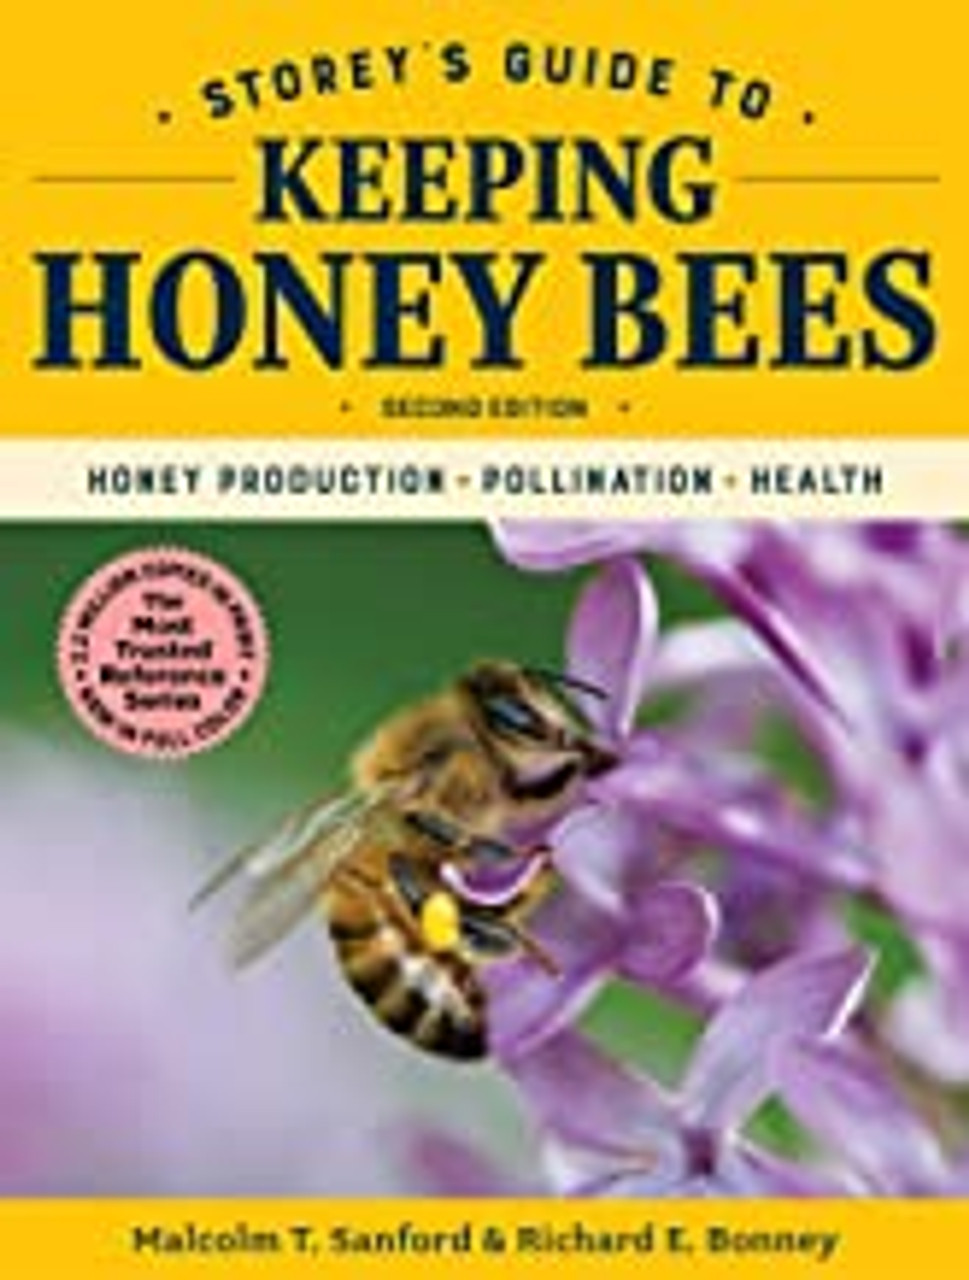 Storey's Guide to Keeping Honey Bees front cover of book